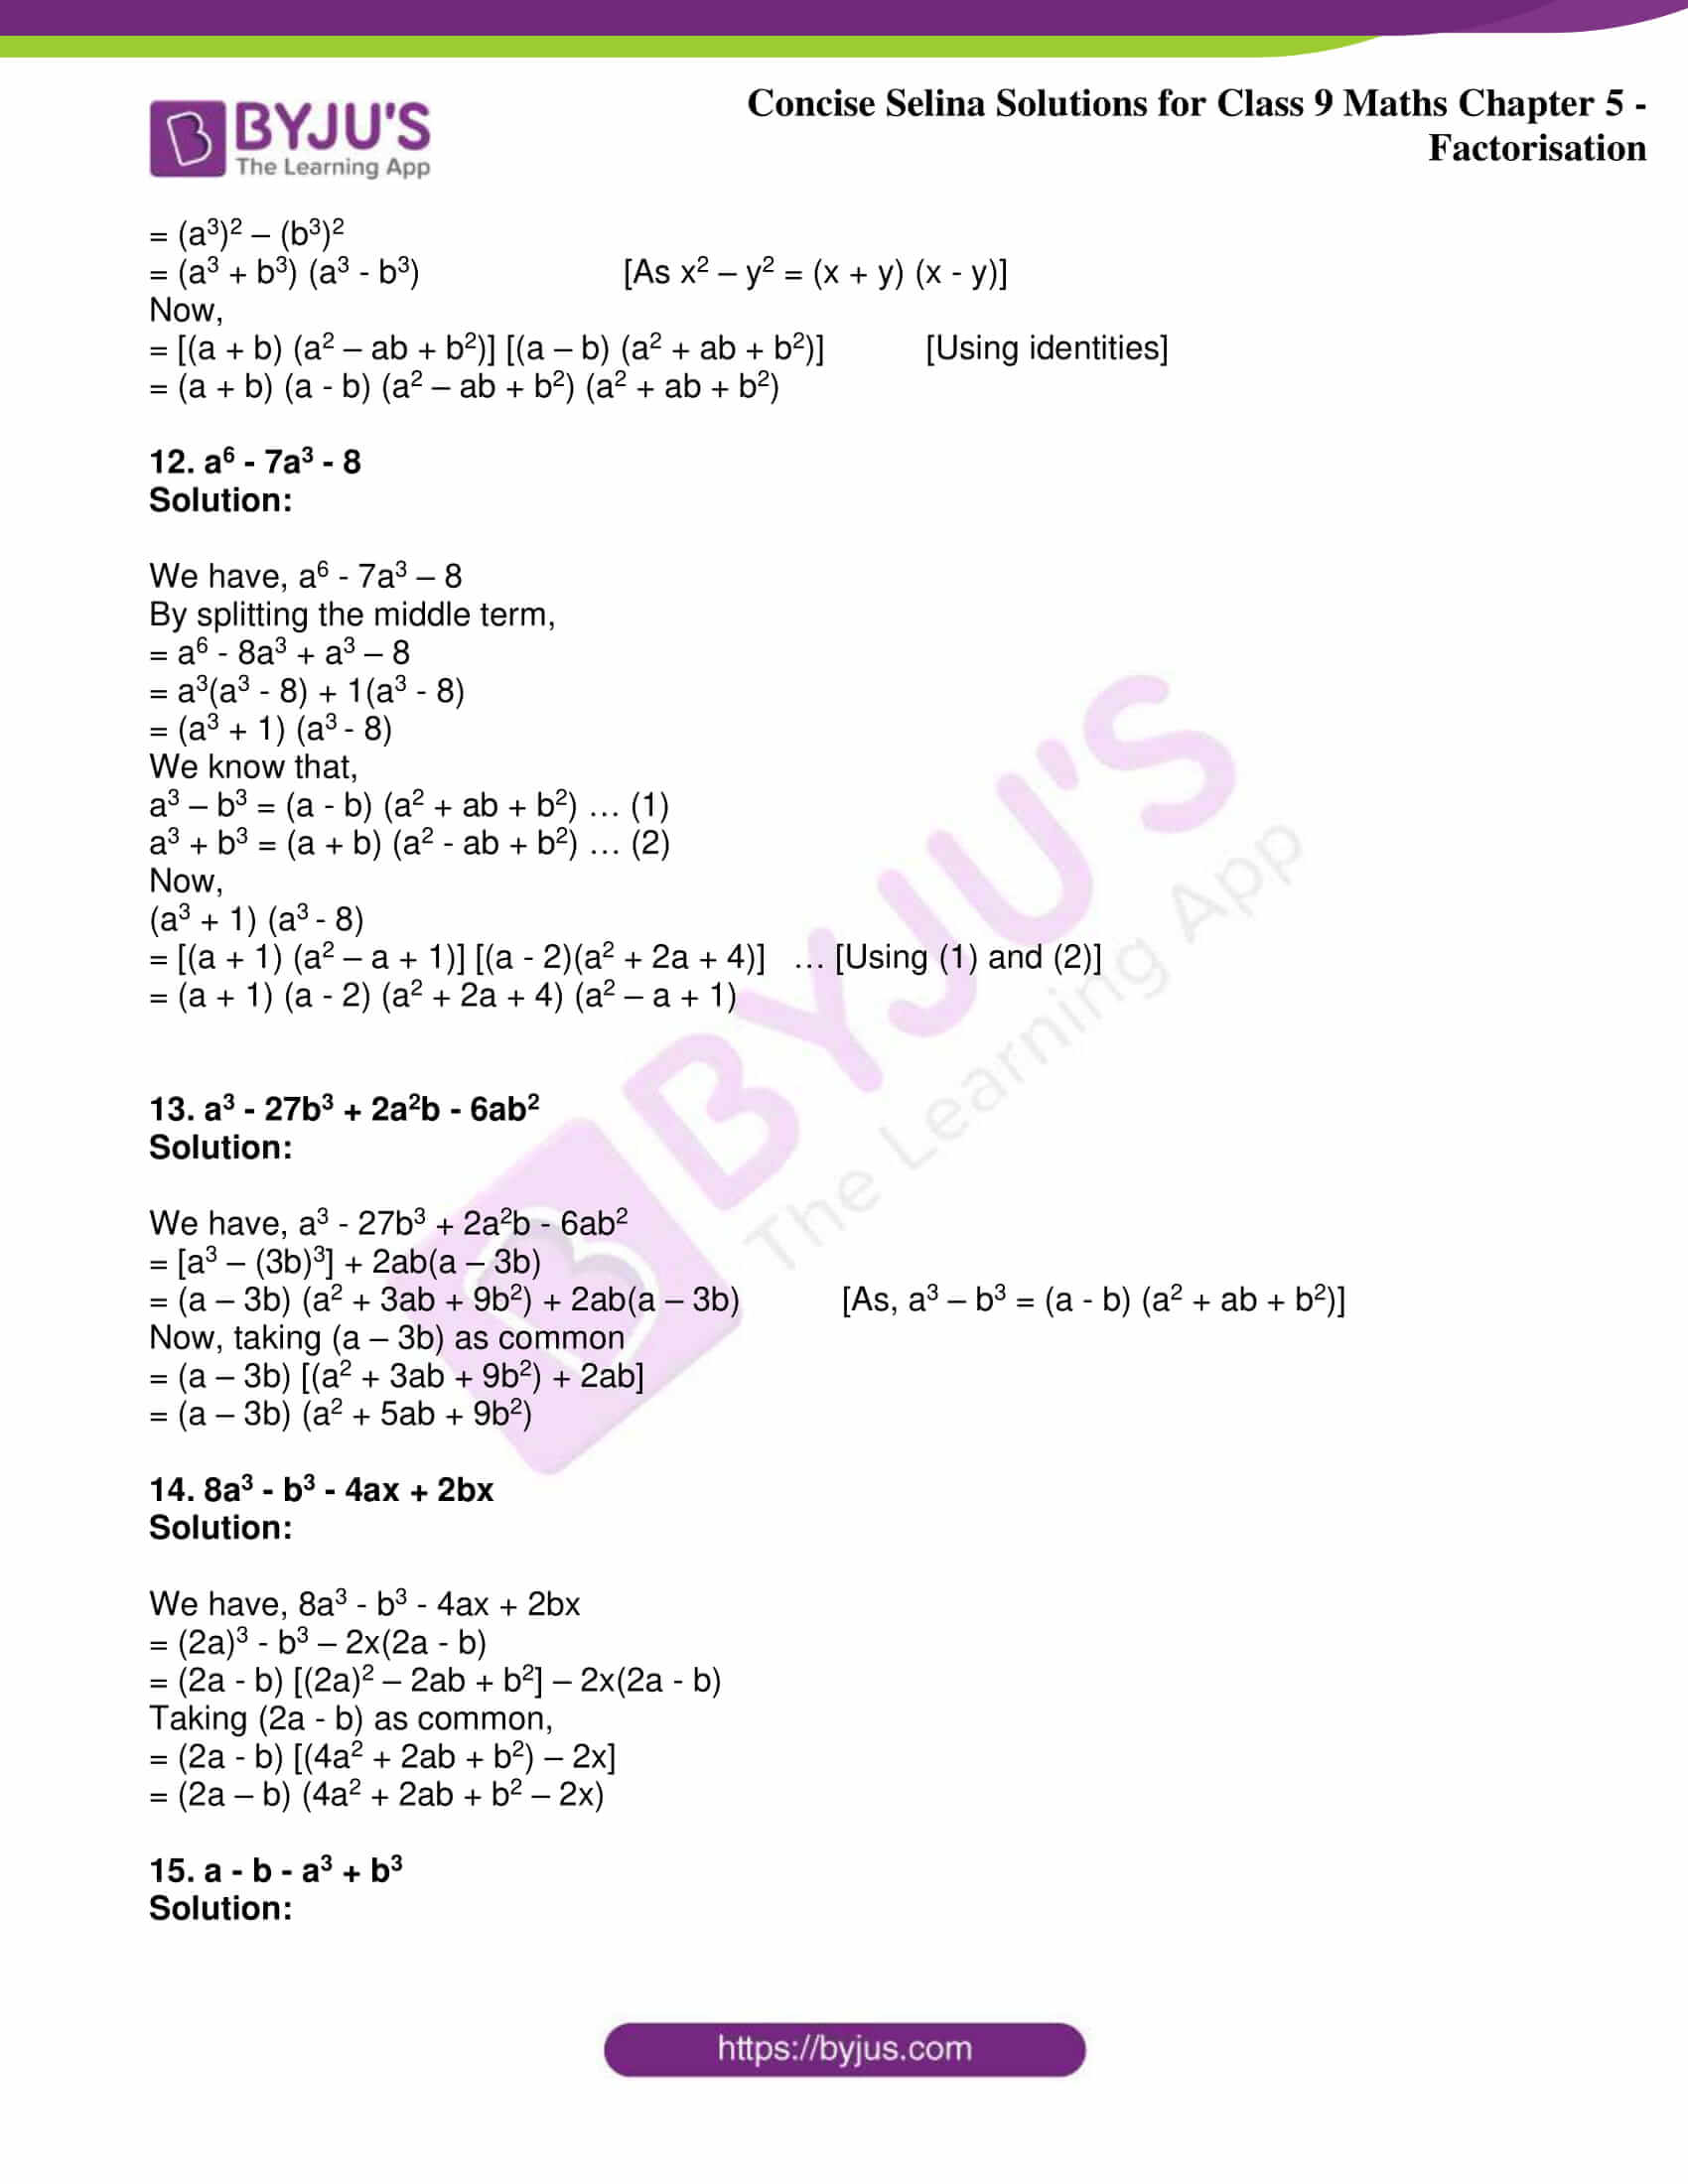 icse class 9 maths may10 selina solutions chapter 5 factorisation 22